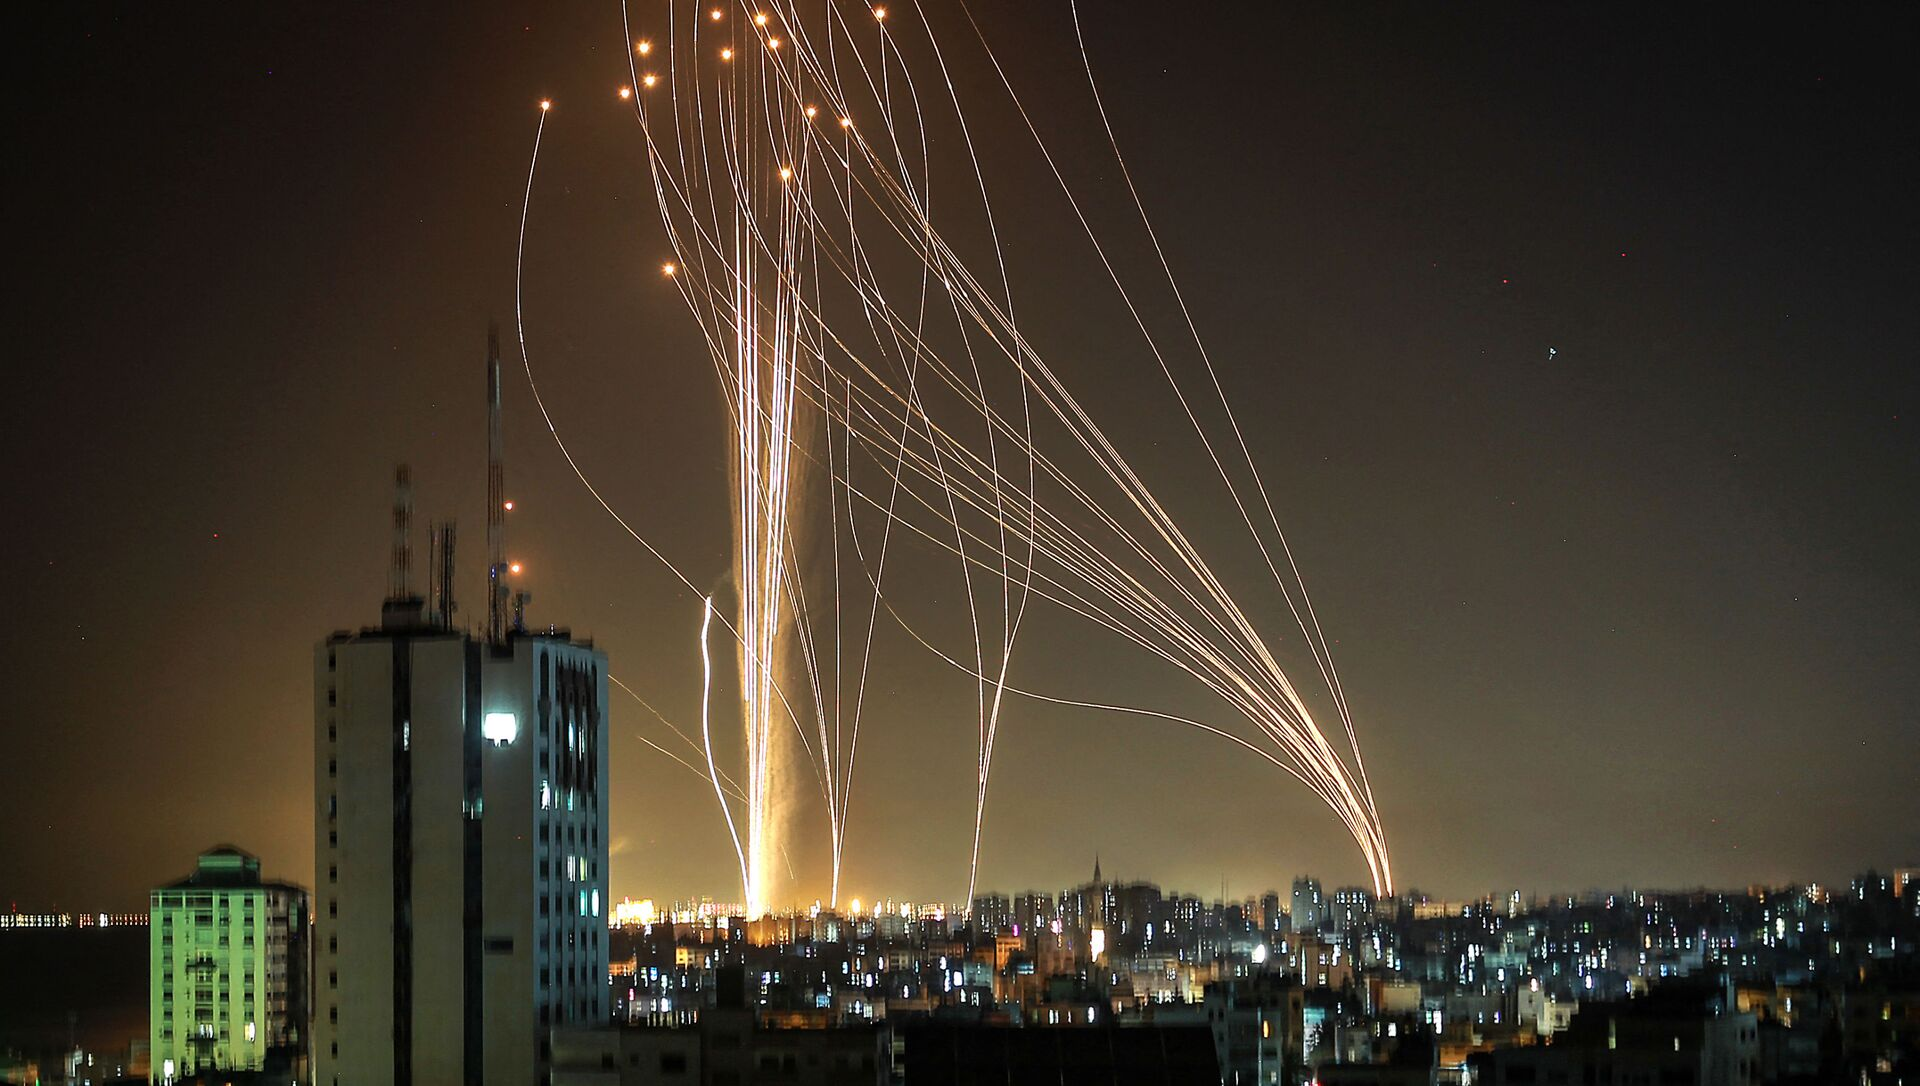 Rockets are launched from Gaza city, controlled by the Palestinian Hamas movement, in response to an Israeli air strike on a 12-storey building in the city, towards the coastal city of Tel Aviv, on 11 May 2021 - Sputnik International, 1920, 24.05.2021